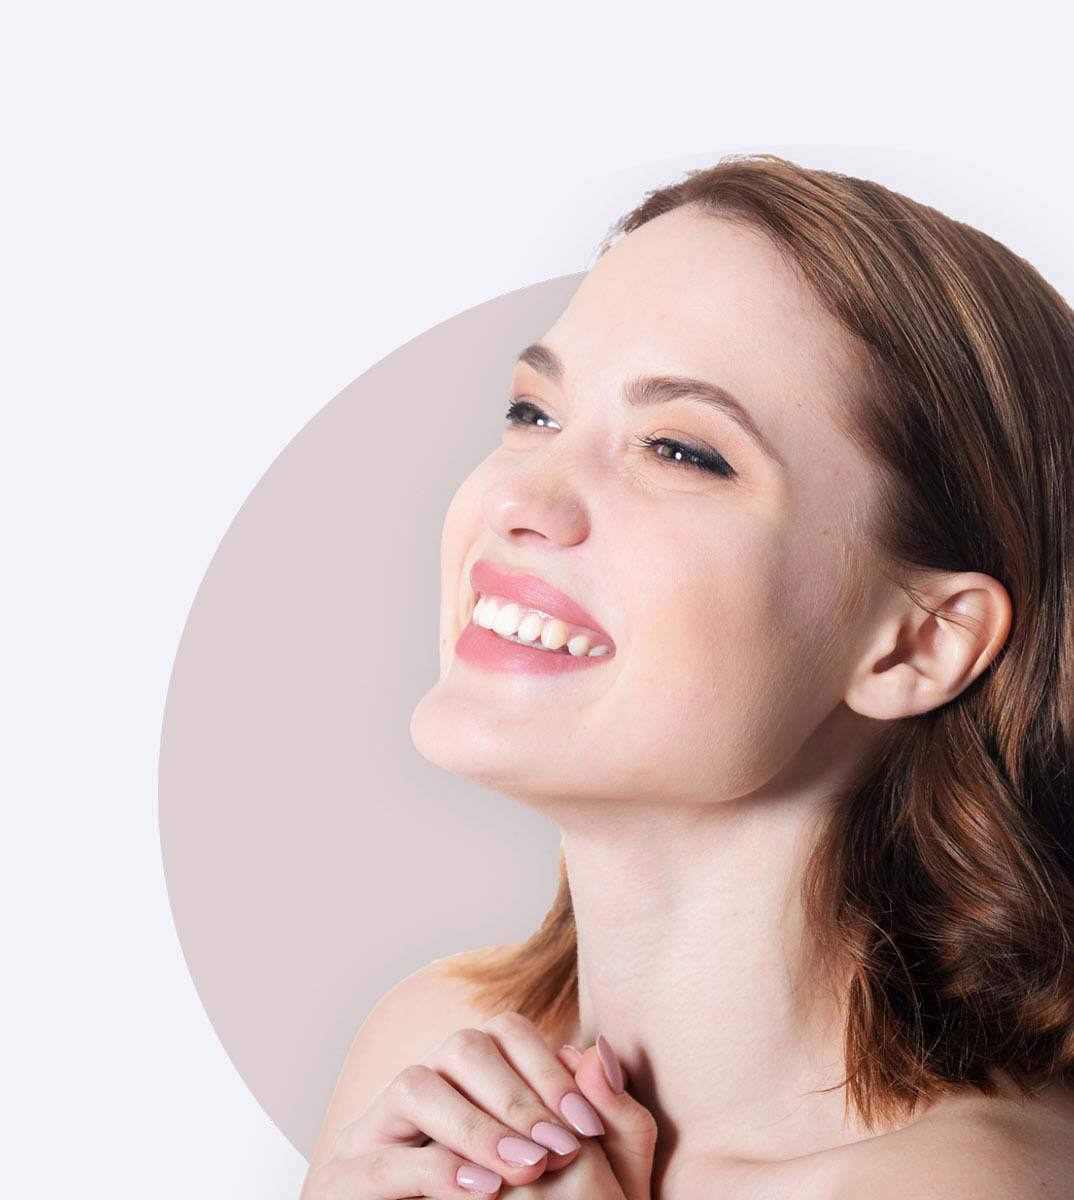 an image of a woman used as part of the hero section on The Aesthetic Company Website